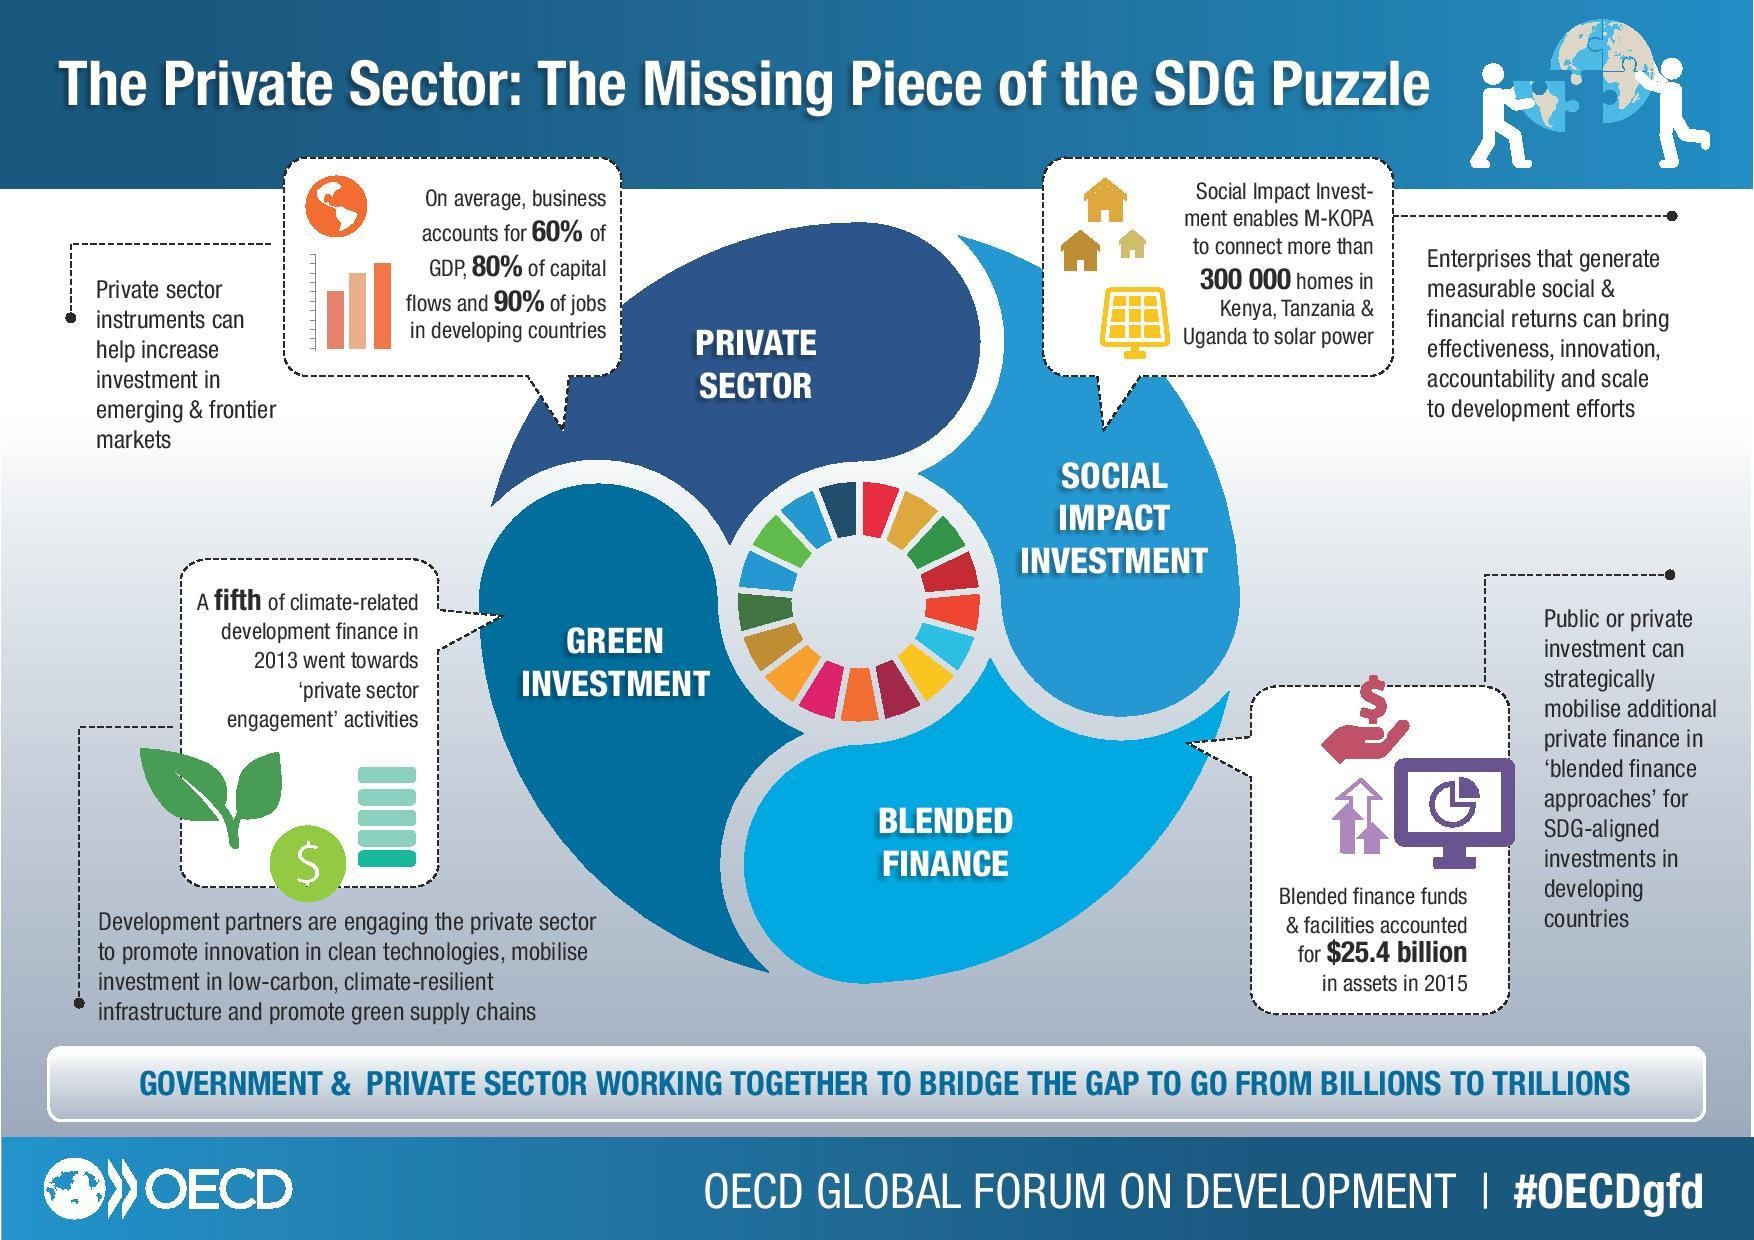 The Private Sector: The Missing Piece of the SDG Puzzle